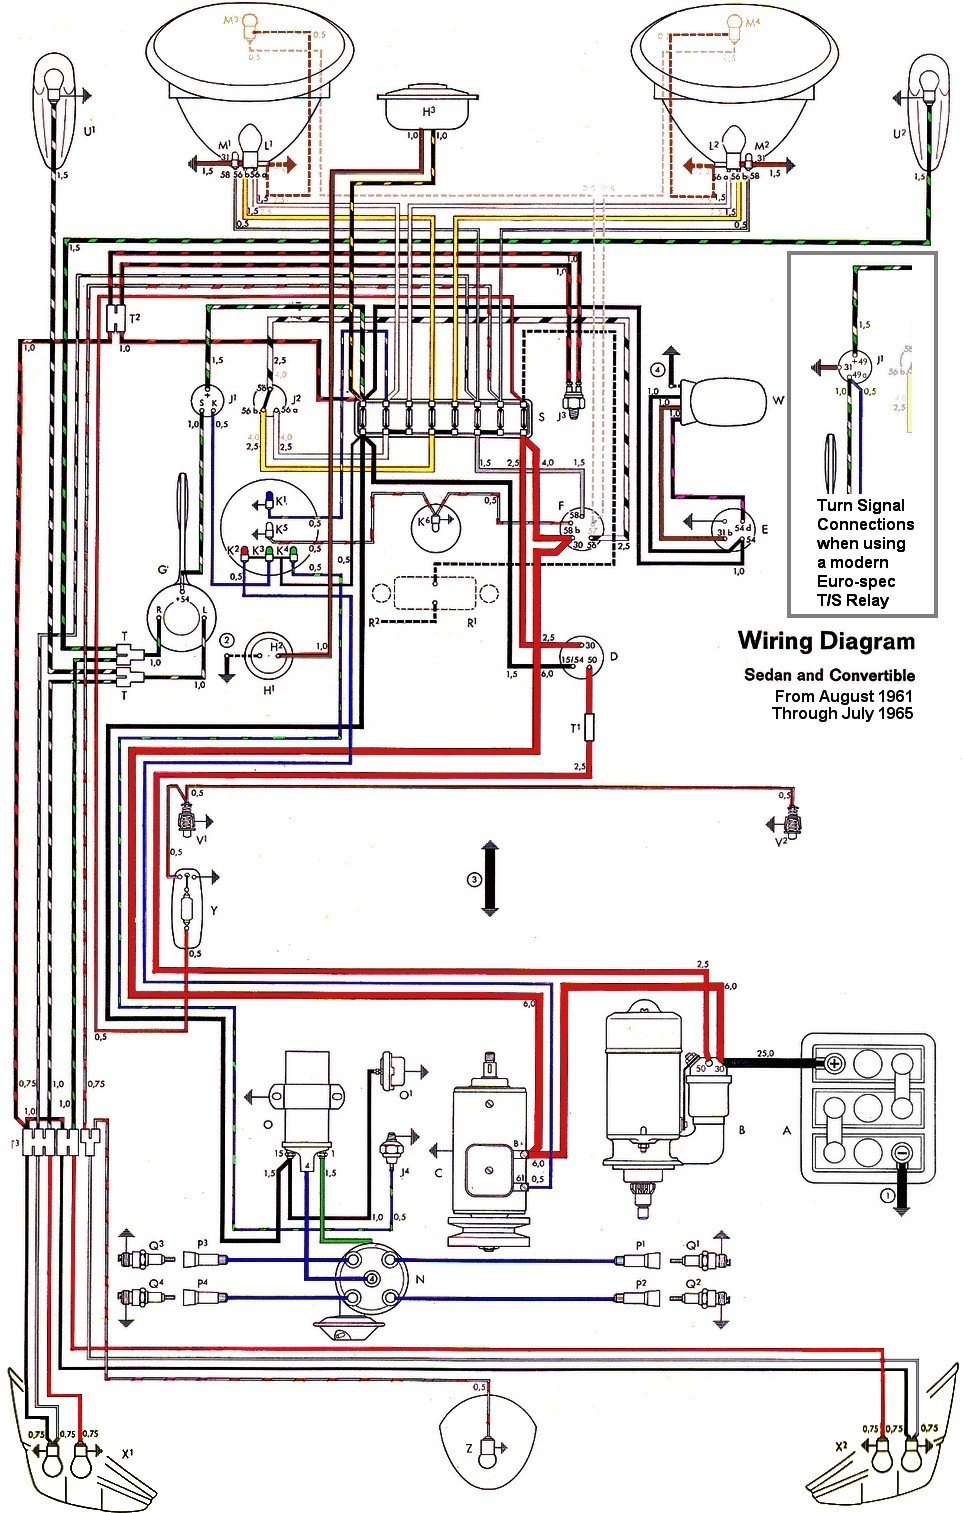 bug_62 65withinset thesamba com type 1 wiring diagrams 1970 vw bug wiring diagram at bayanpartner.co